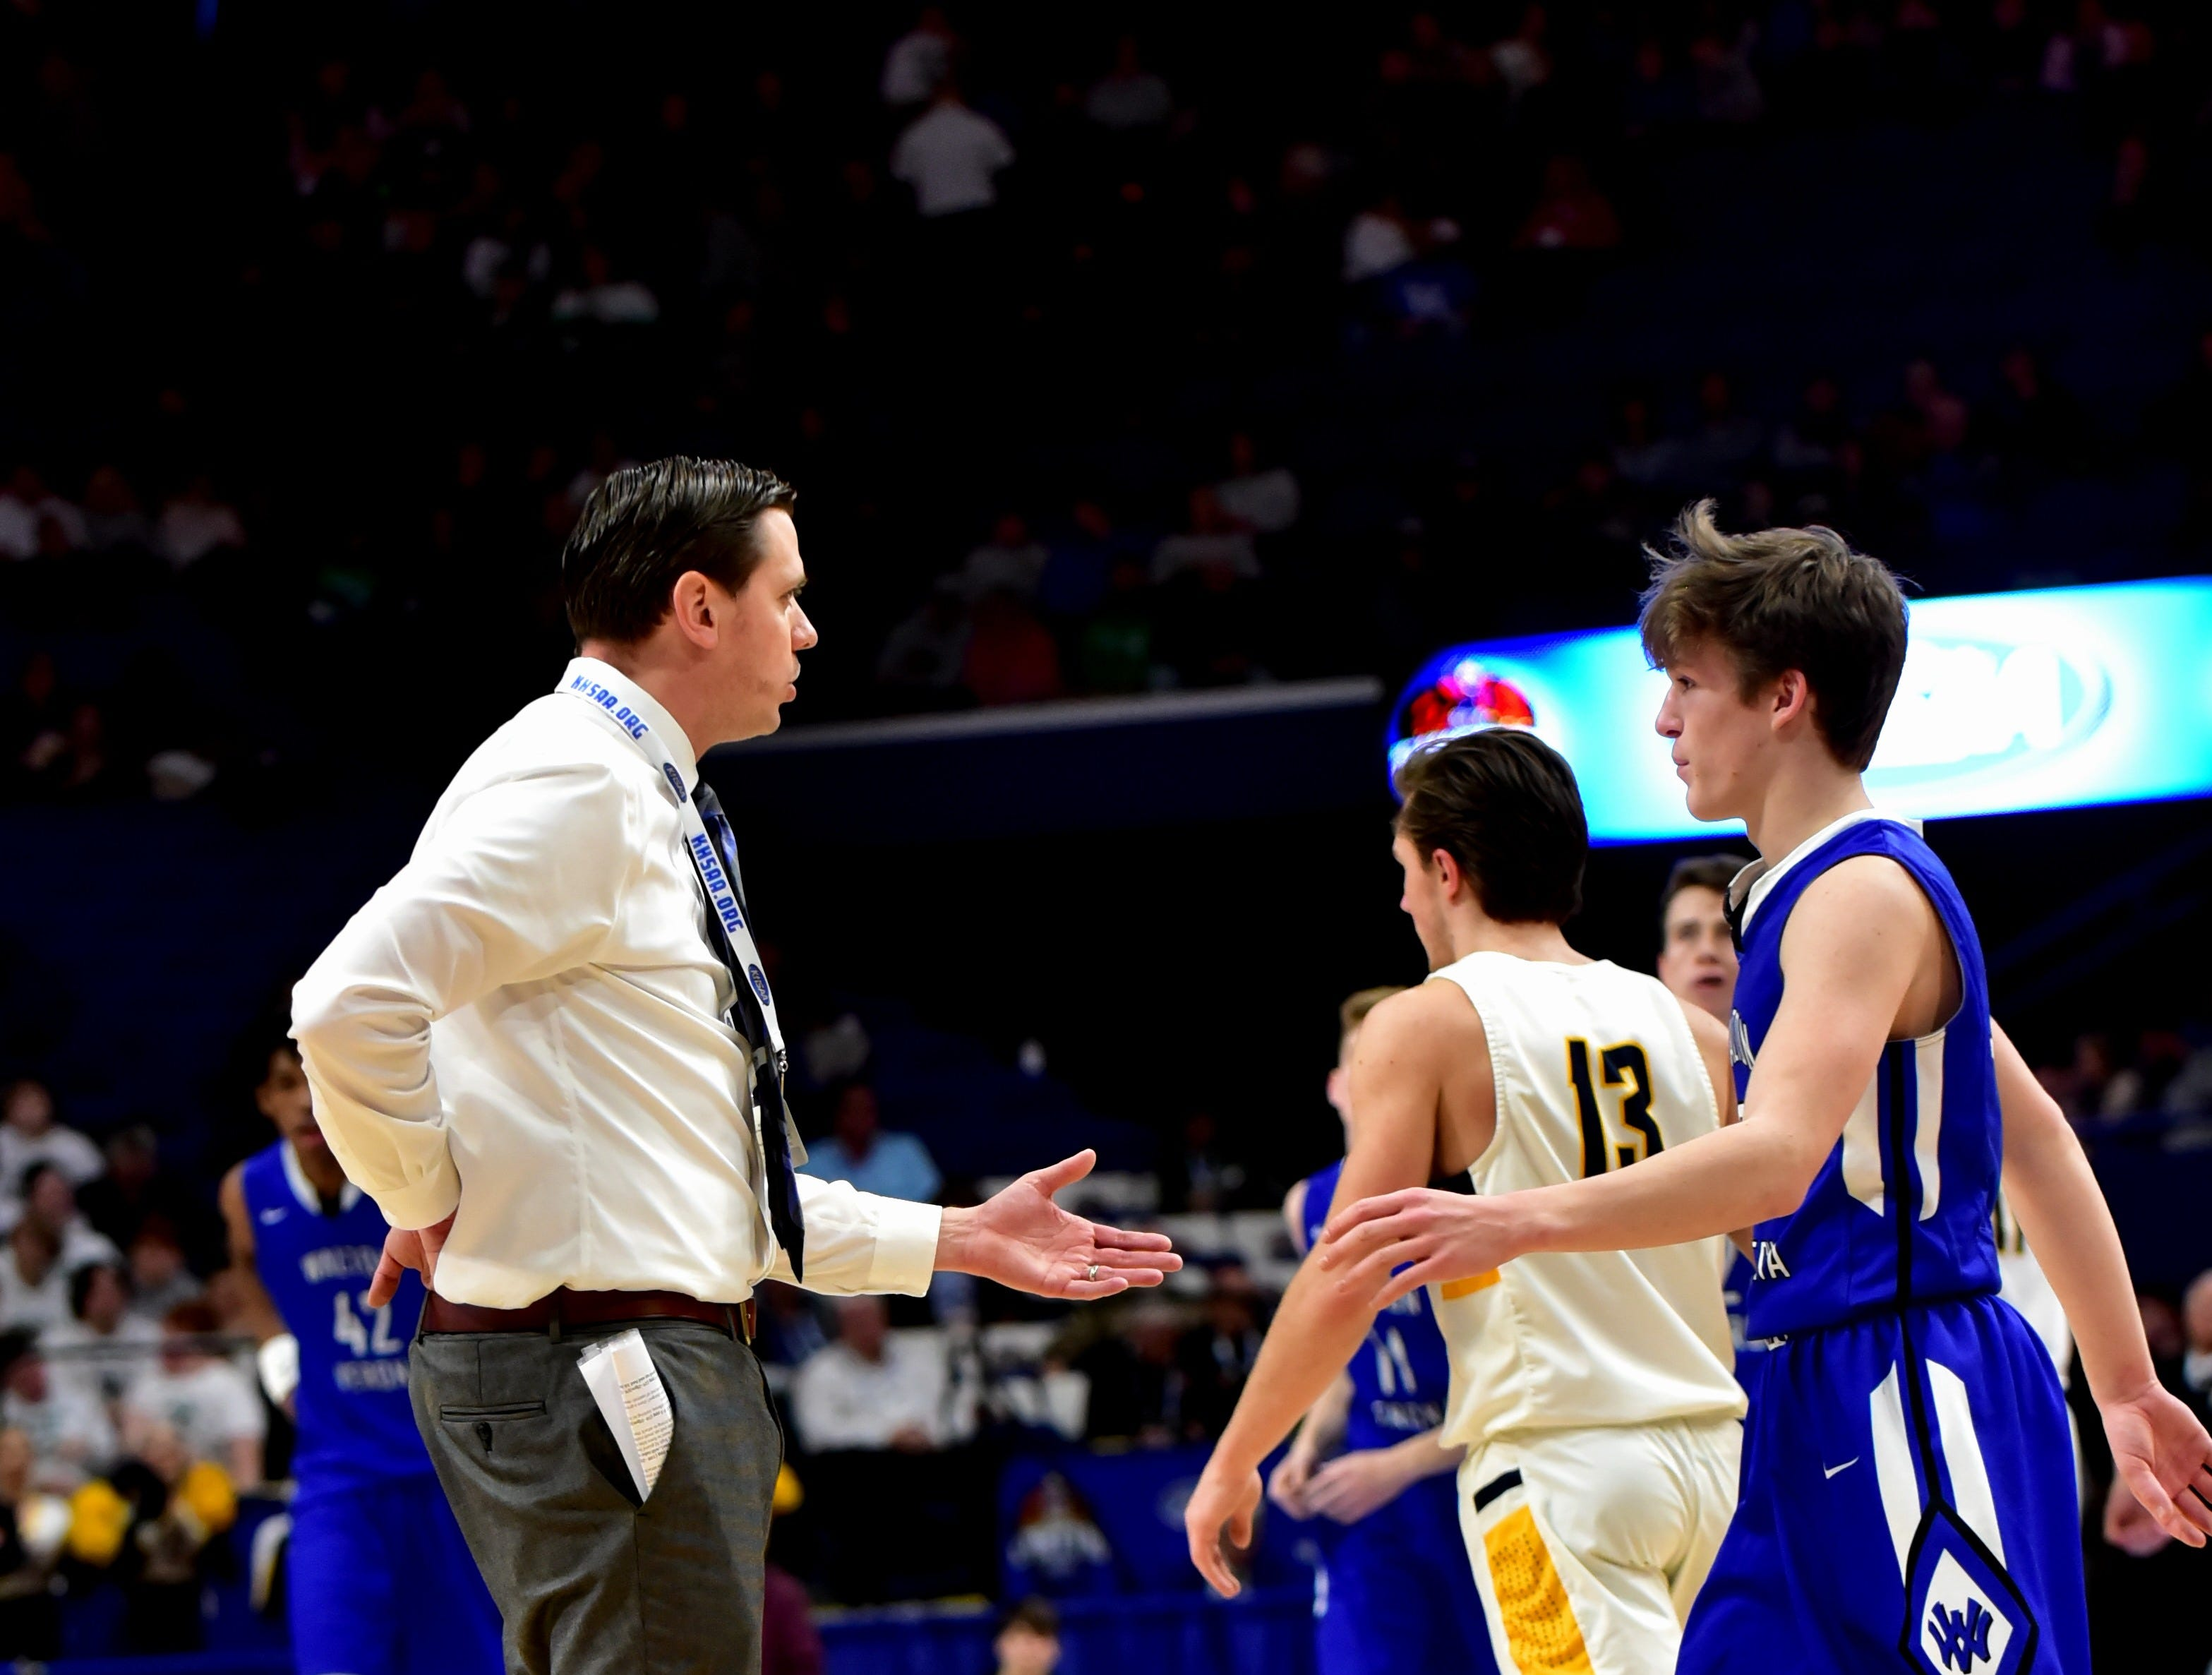 Coach Grant Brannen of Walton Verona congratulates his players after wiing game one at the KHSAA Sweet 16 Tournament at Rupp Arena in Lexington, KY, March 6, 2019